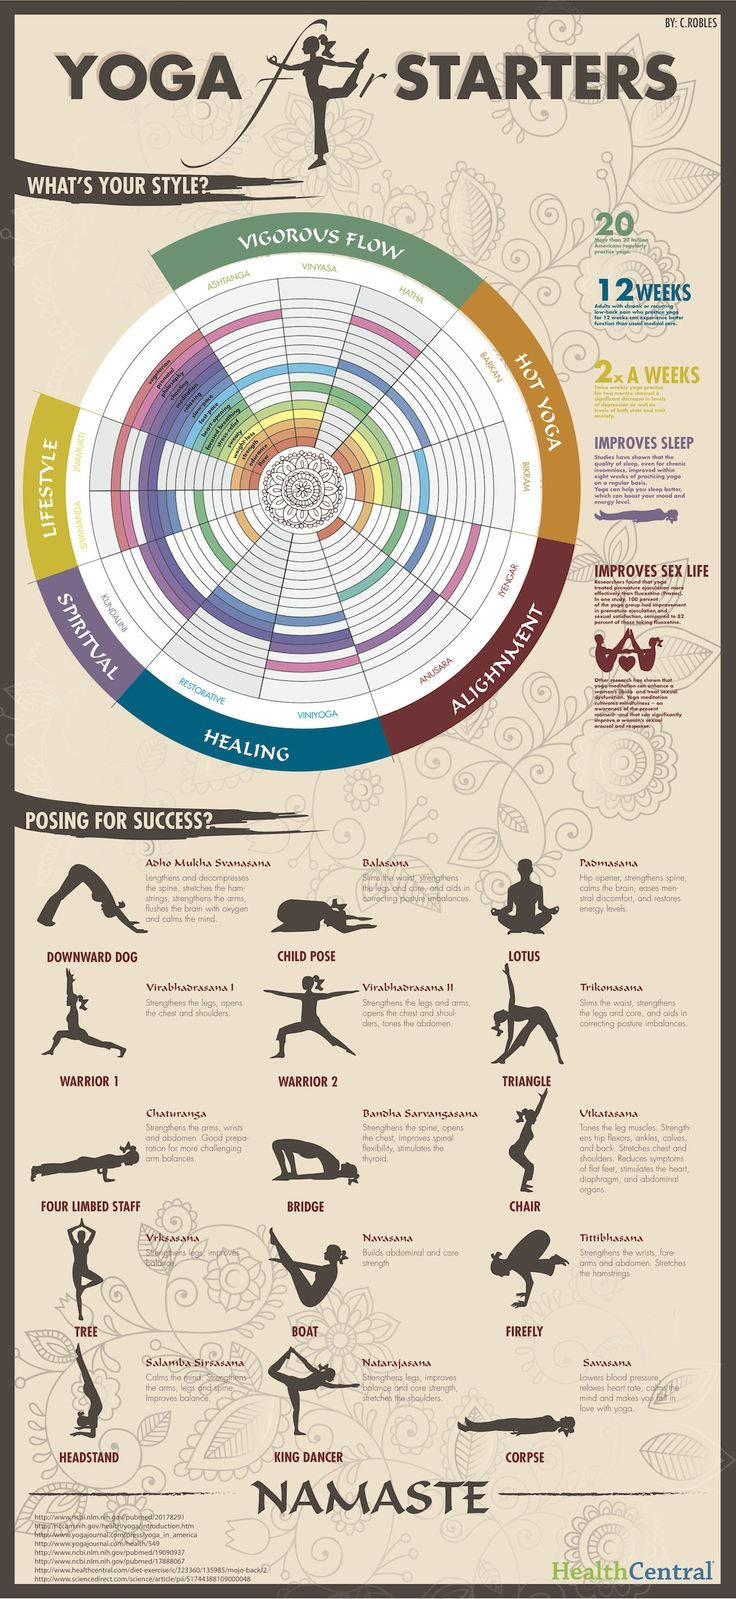 20.4 million Americans practice yoga - of current non-yogis, 44.4 percent of Americans are interested in trying yoga. With benefits from, flexibility,